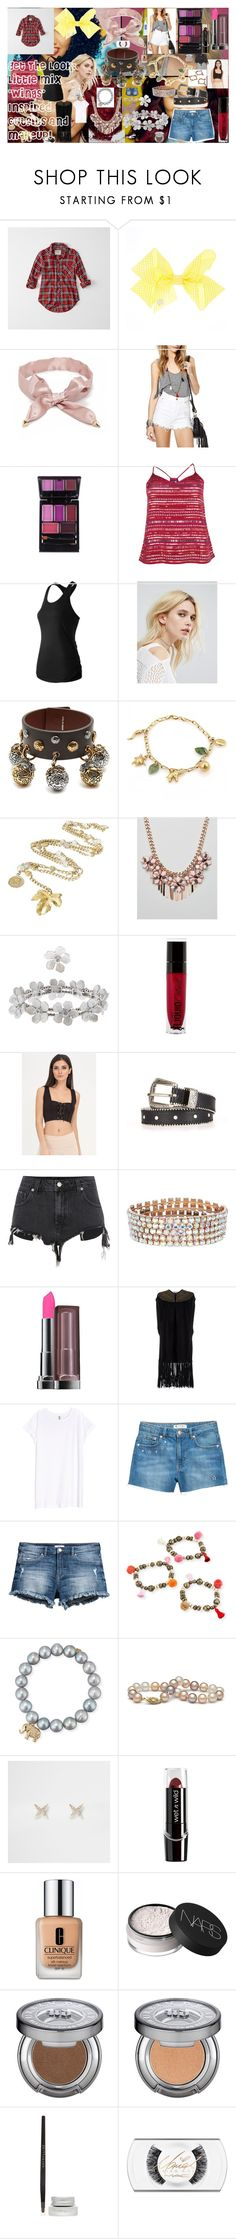 """""""Get The Look: Little Mix 'Wings' Inspired Outfits And Makeup!"""" by oroartye-1 on Polyvore featuring Abercrombie & Fitch, Forever 21, Boohoo, New Balance, Reclaimed Vintage, Alexander McQueen, Chanel, ALDO, Monsoon and Wet n Wild"""